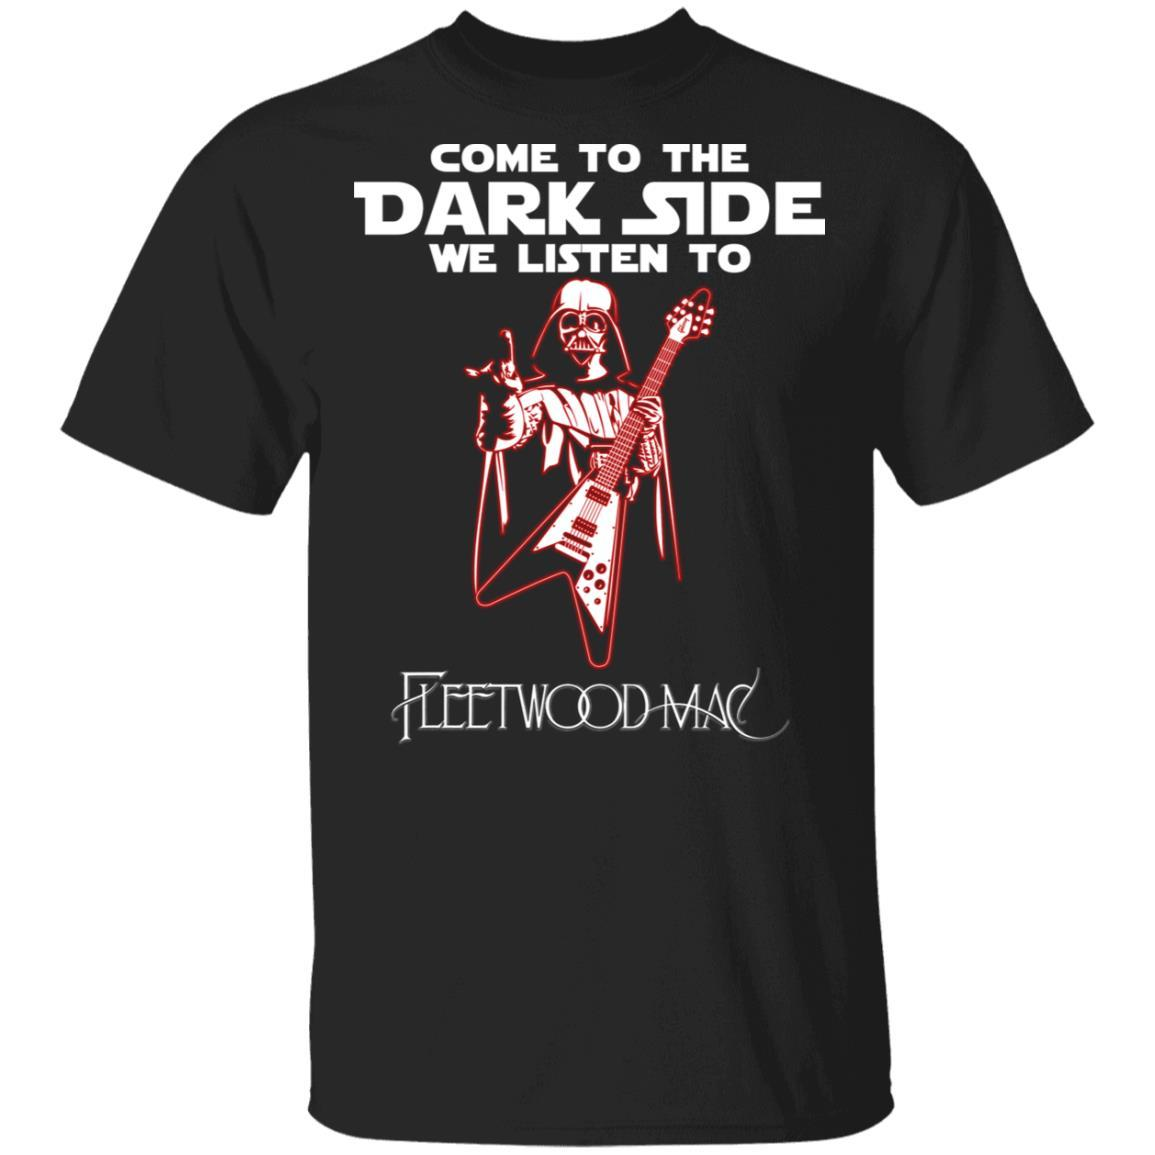 Come To The Dark Side We Listen To Fleetwood Mac T-shirt HA12